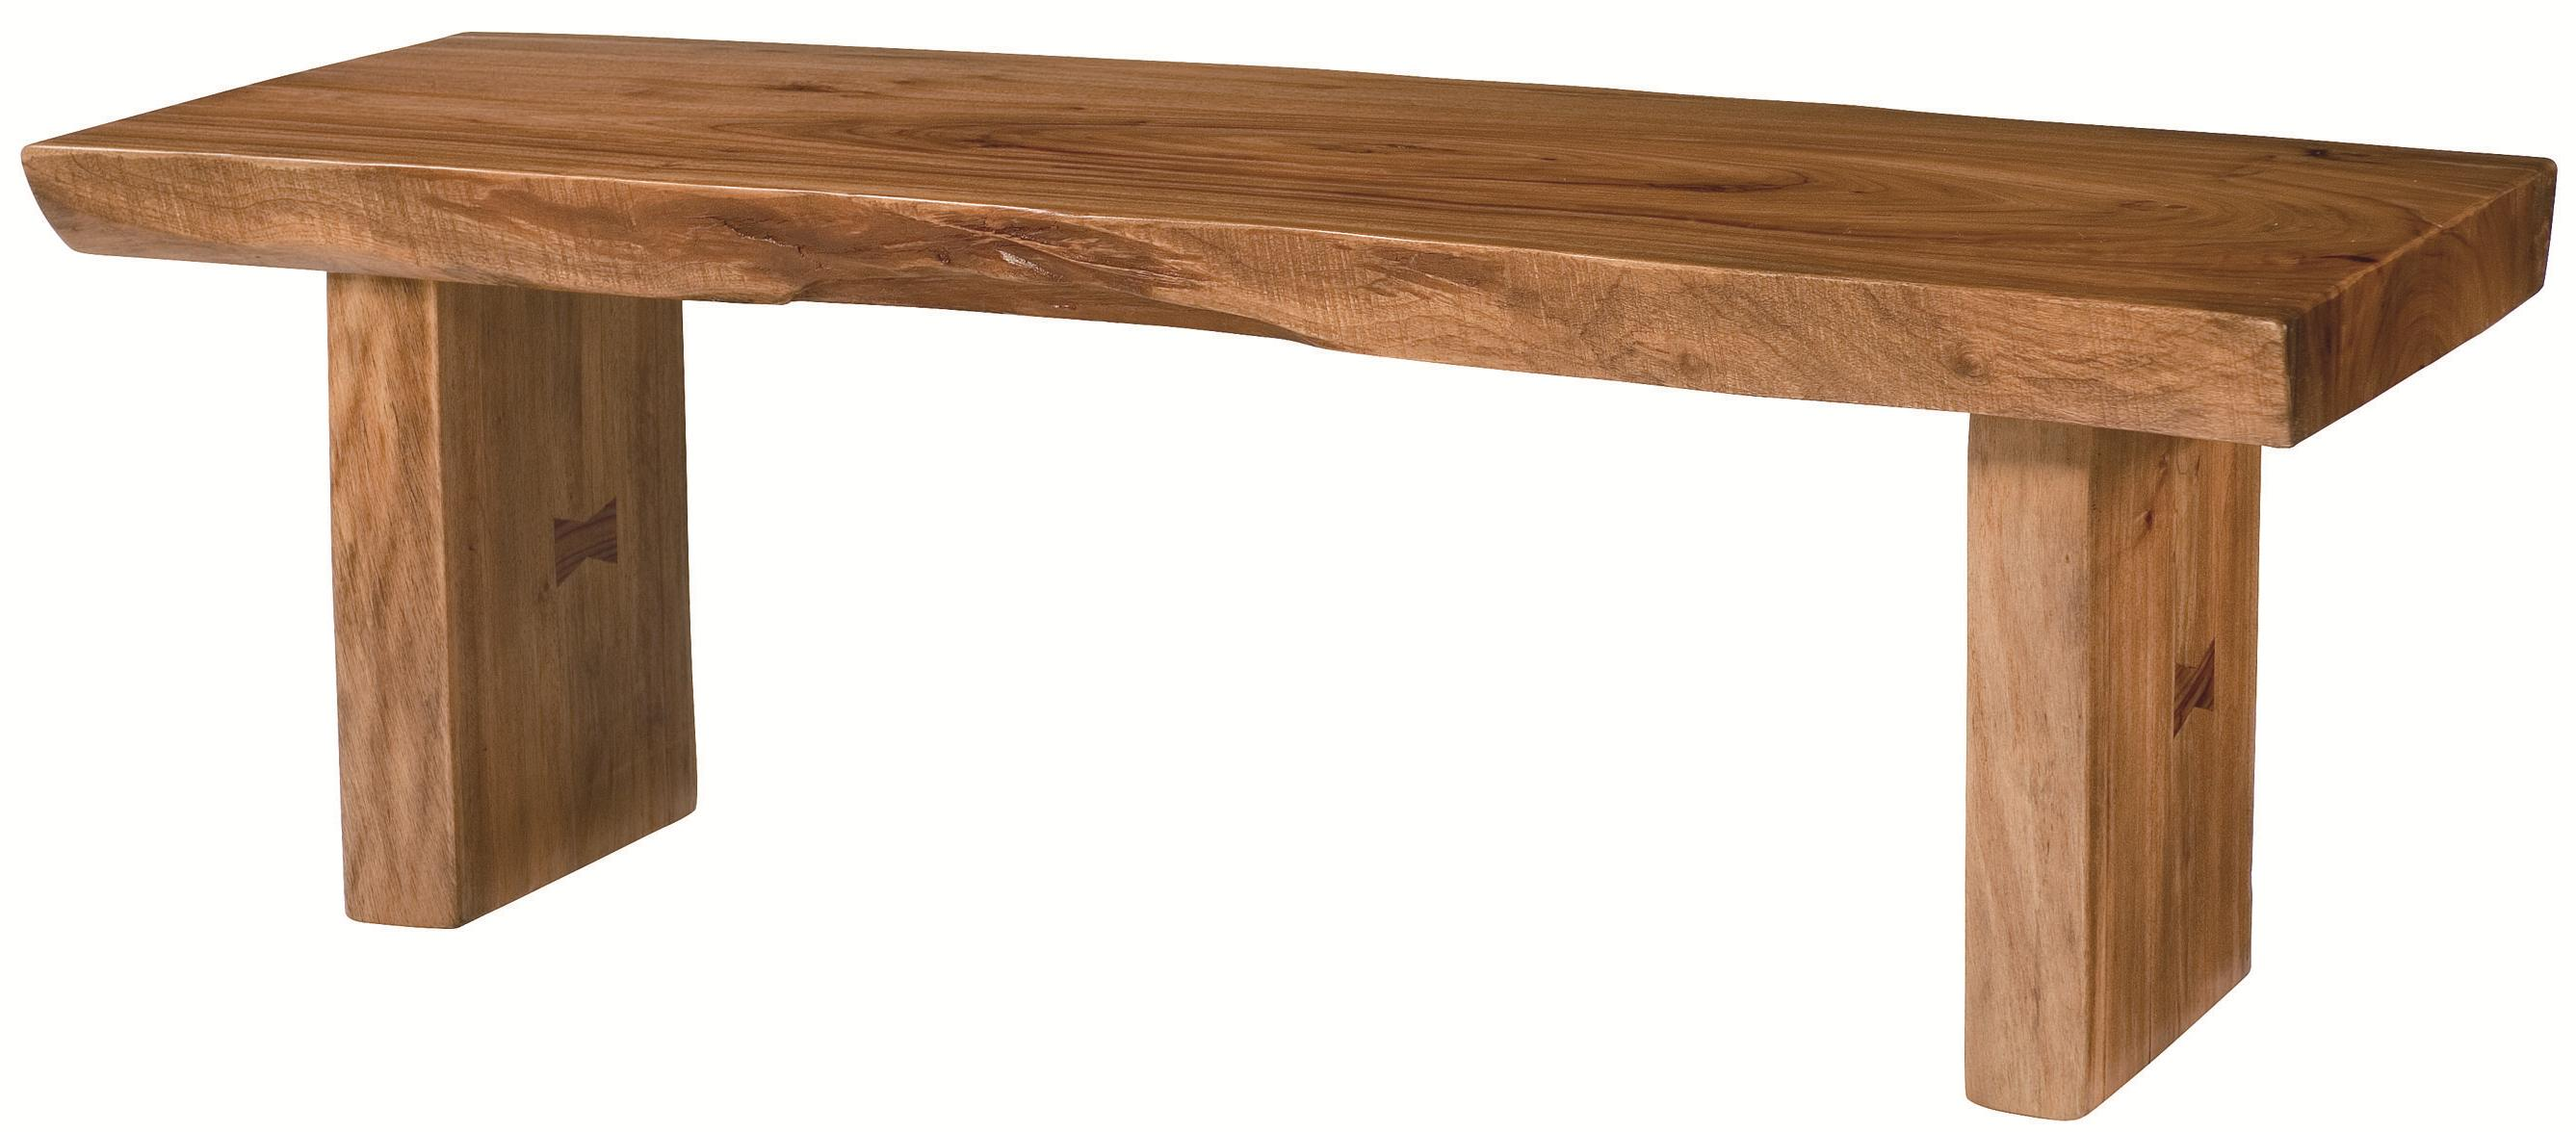 Hammary Hidden Treasures Live Edge Cocktail Table - Item Number: 090-554